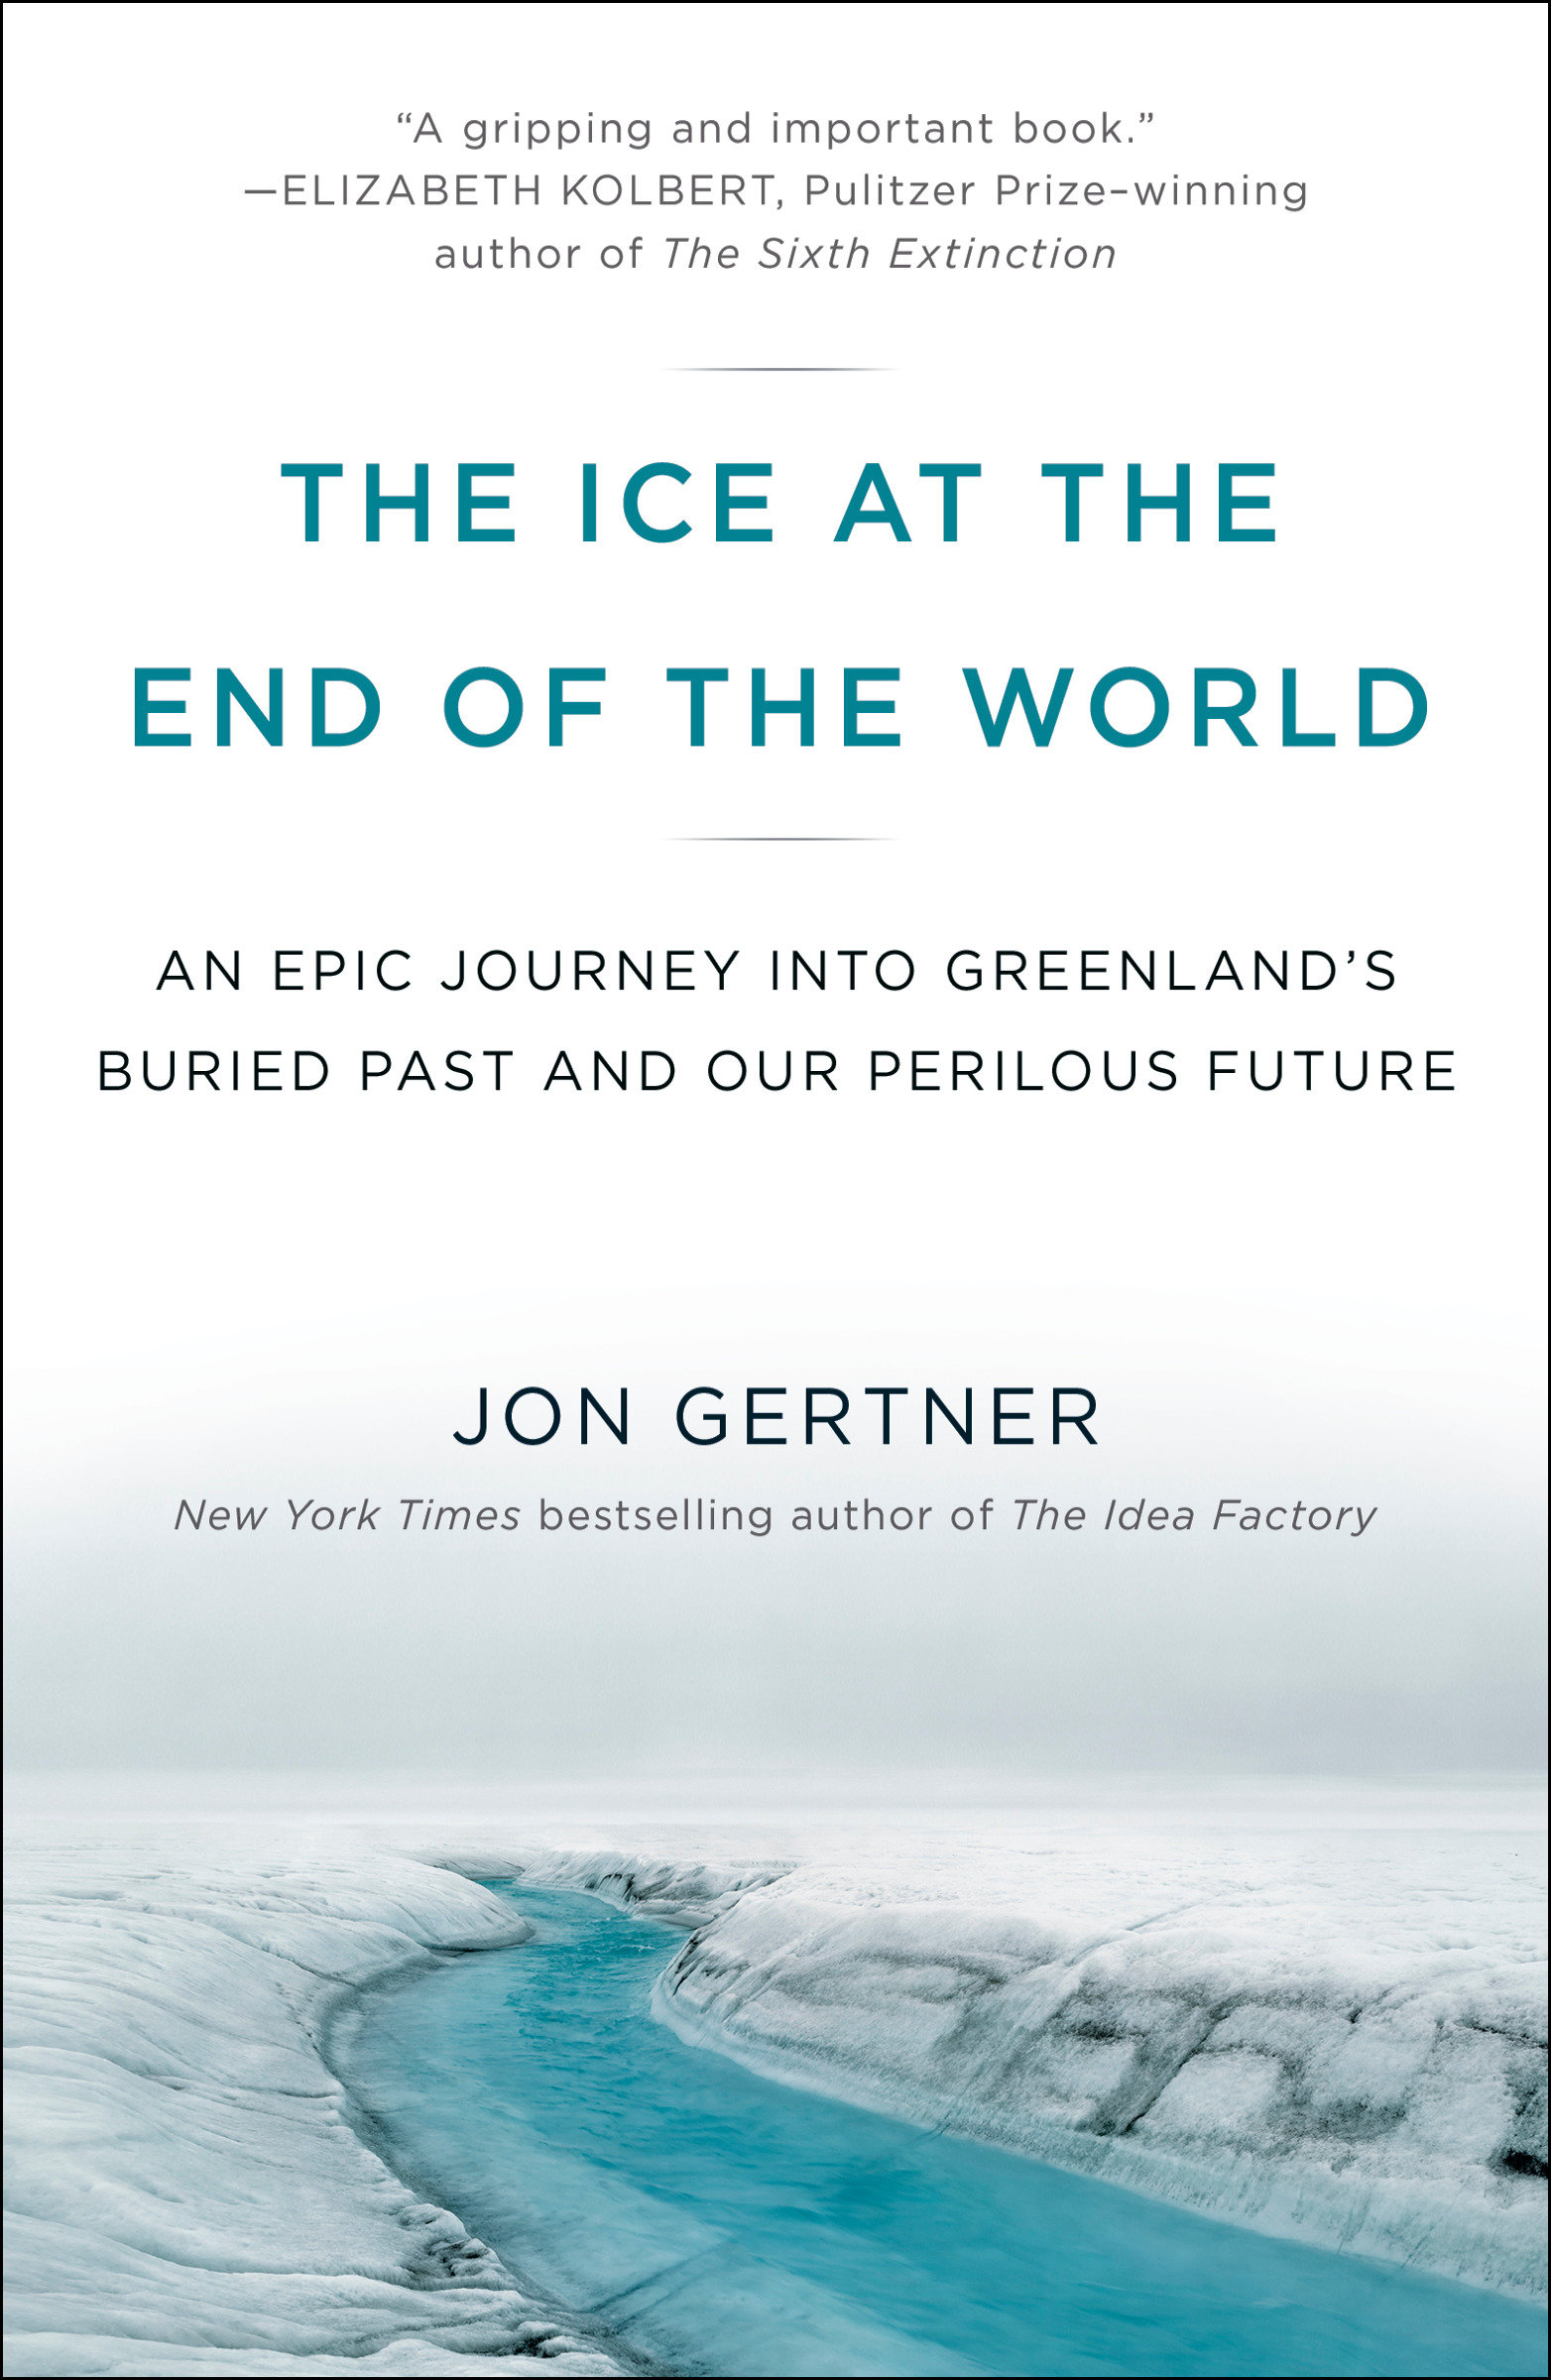 The Ice at the End of the World An Epic Journey into Greenland's Buried Past and Our Perilous Future